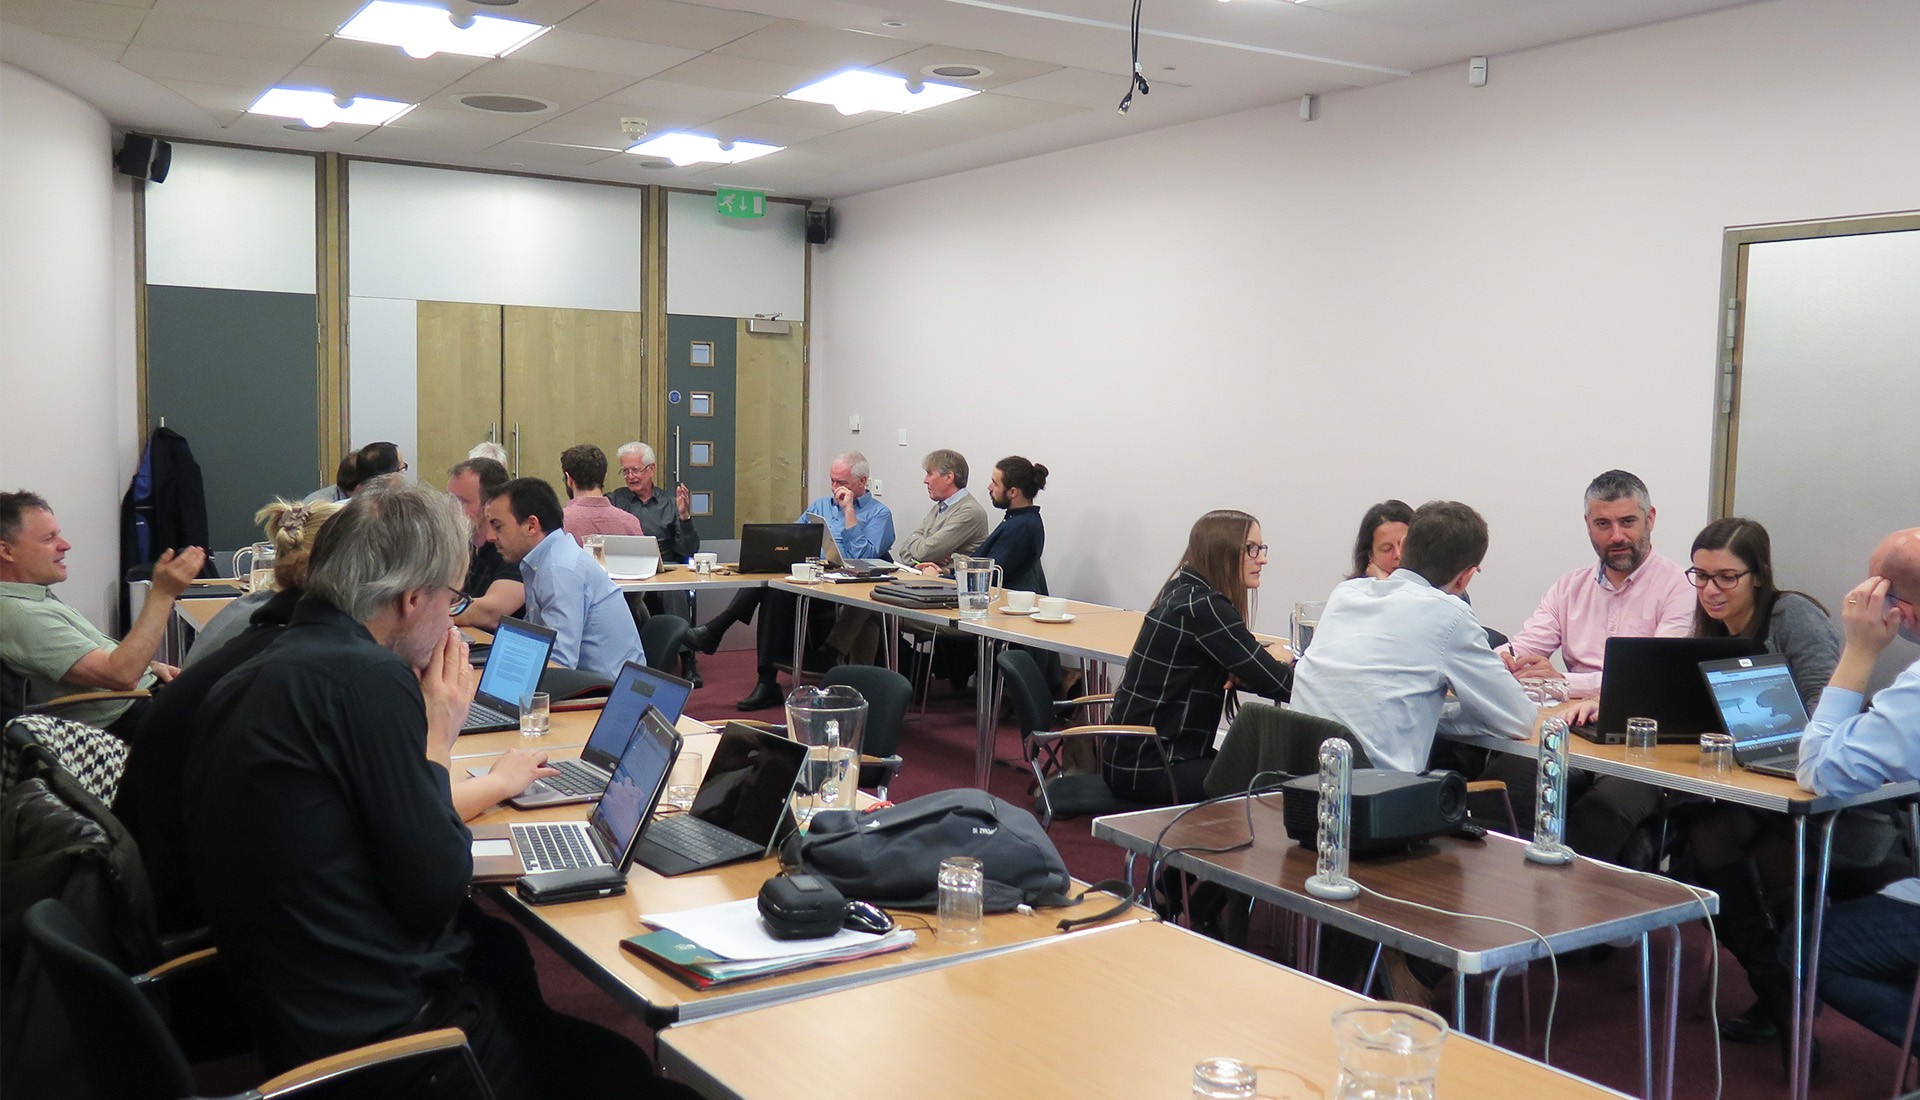 cambridge-hosted-the-4th-physical-meeting-of-feedback